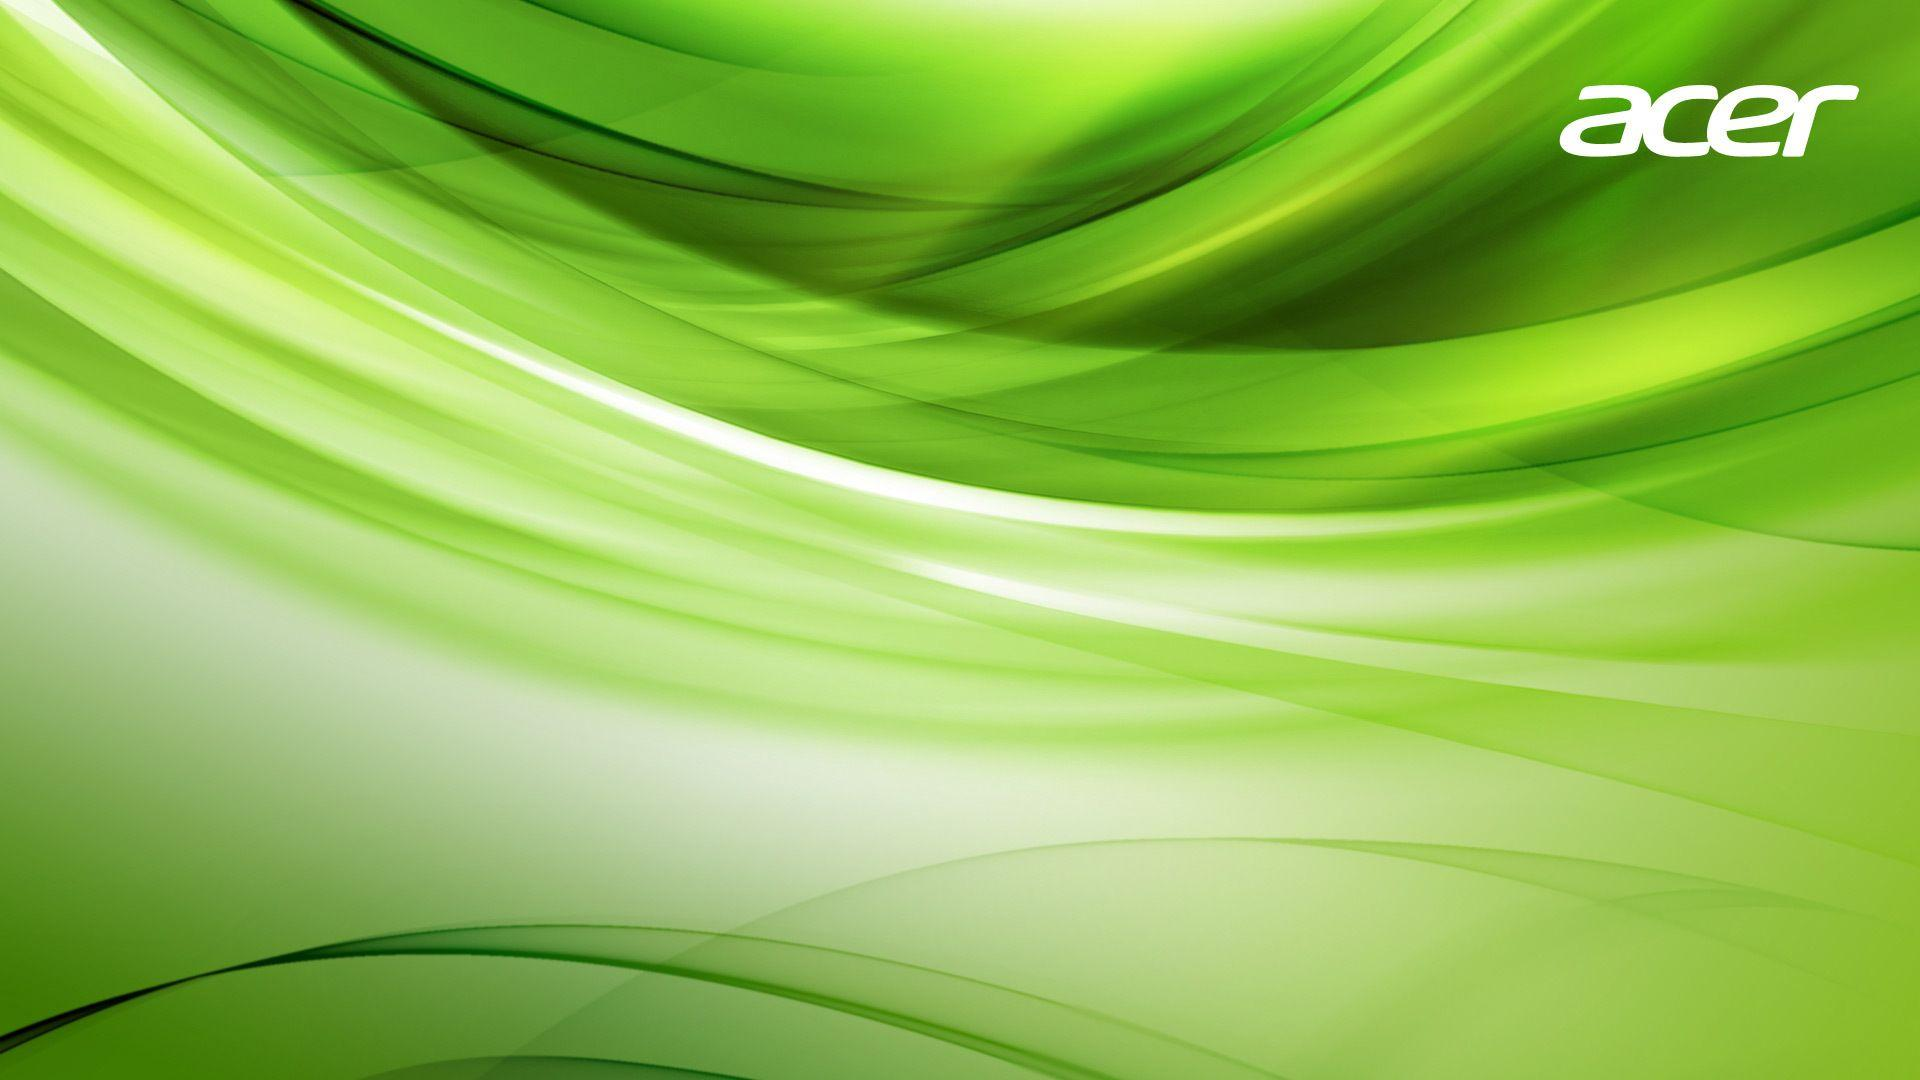 acer wallpapers 2015 wallpaper cave